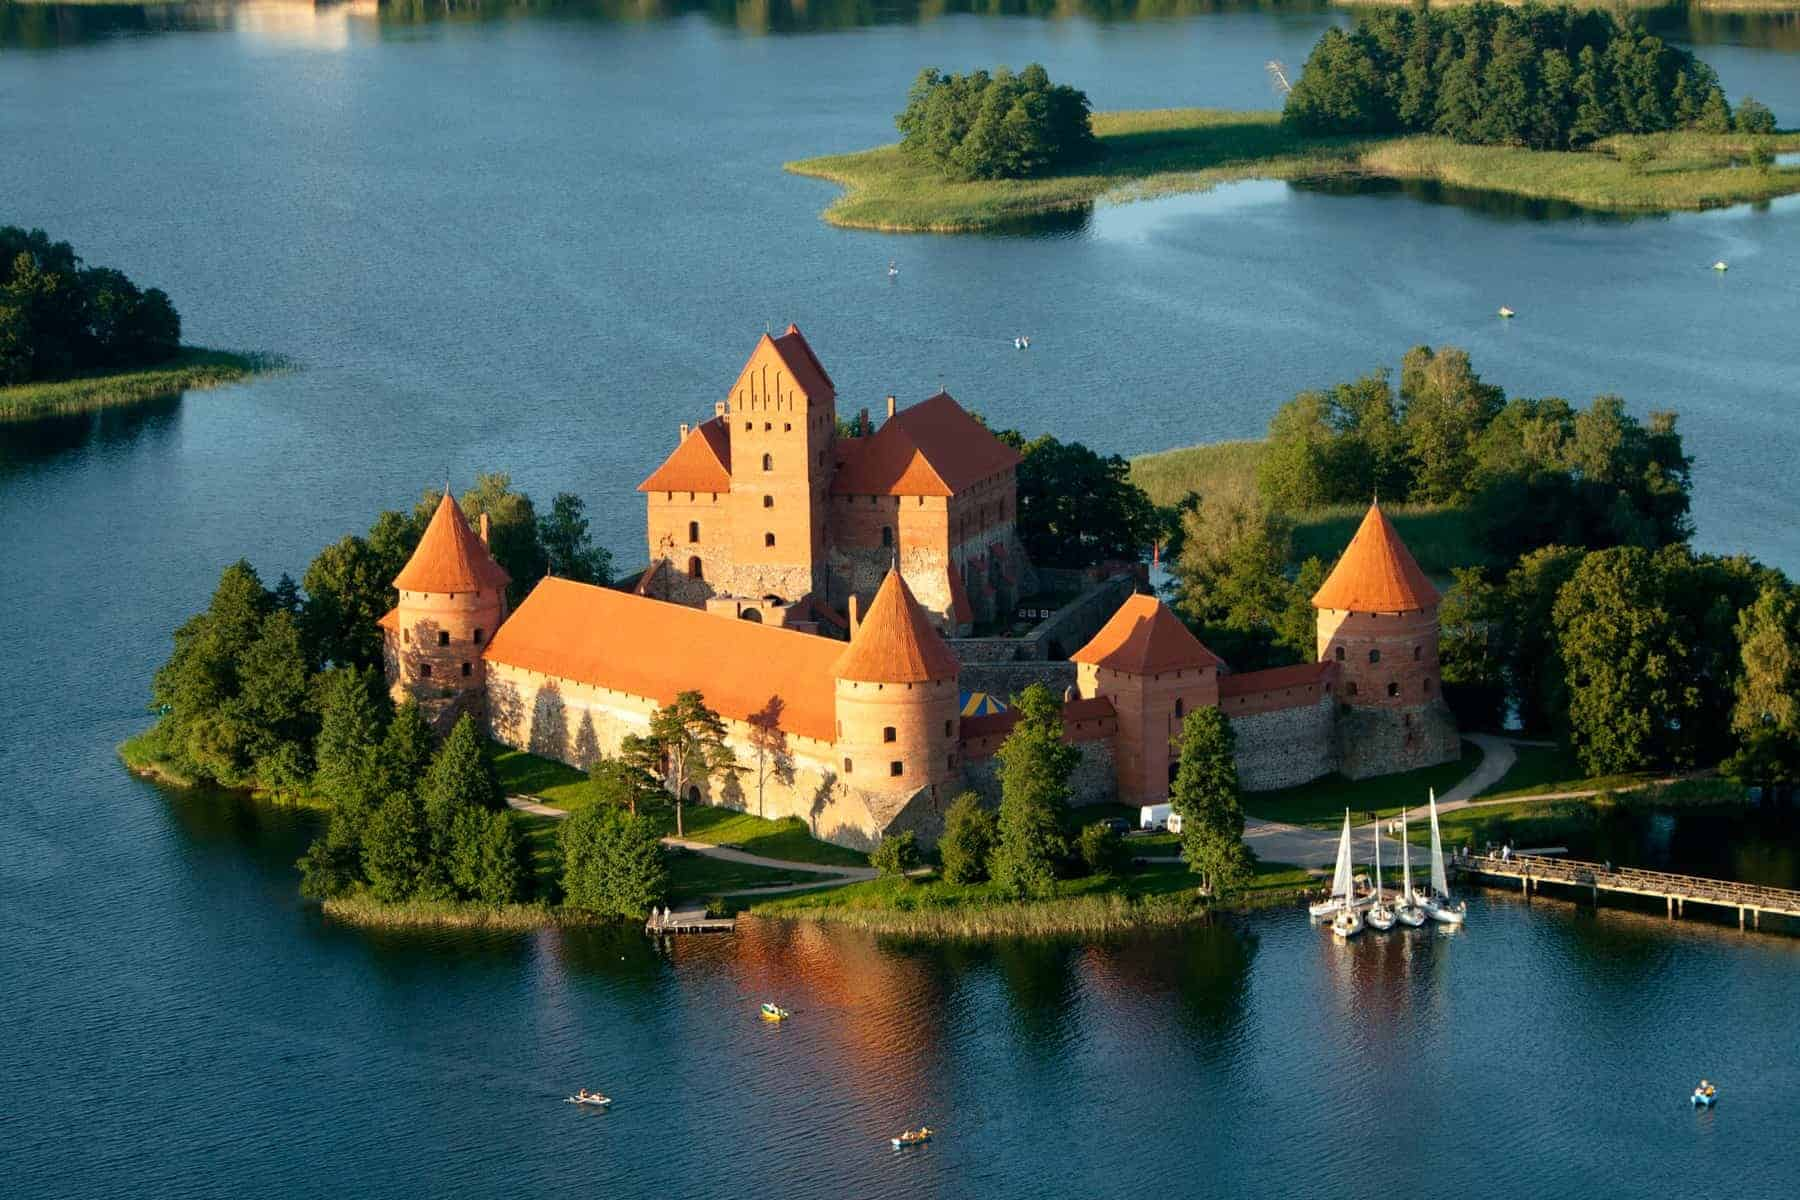 Trakai castle in Lithuania. History, historical